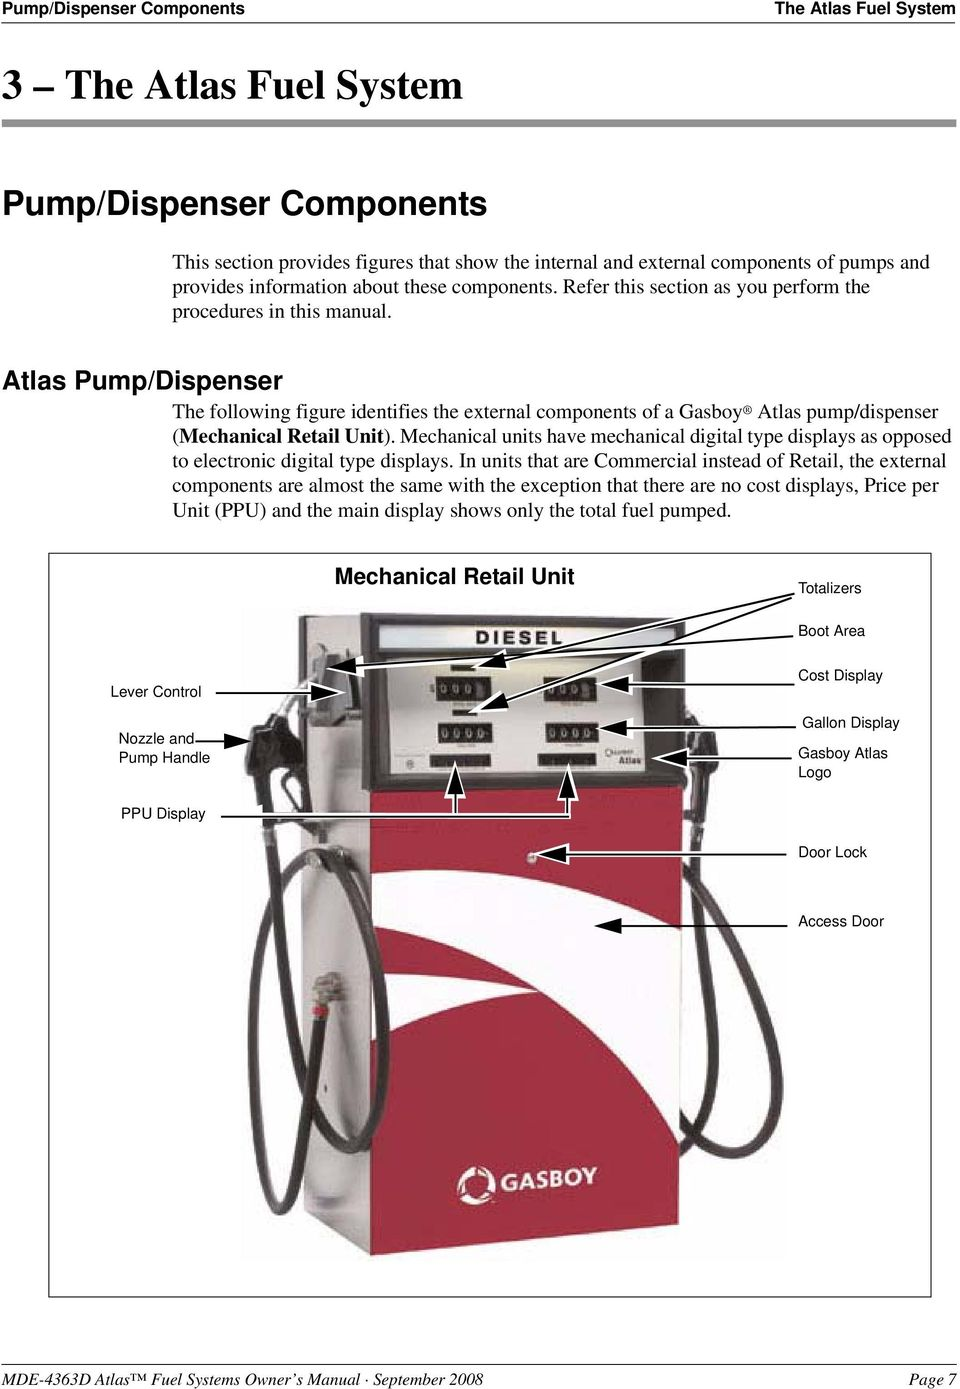 Atlas Fuel Systems Owner S Manual Mde 4363d Pdf Snap Switch Machine Wiring Diagram Pump Dispenser The Following Figure Identifies External Components Of A Gasboy